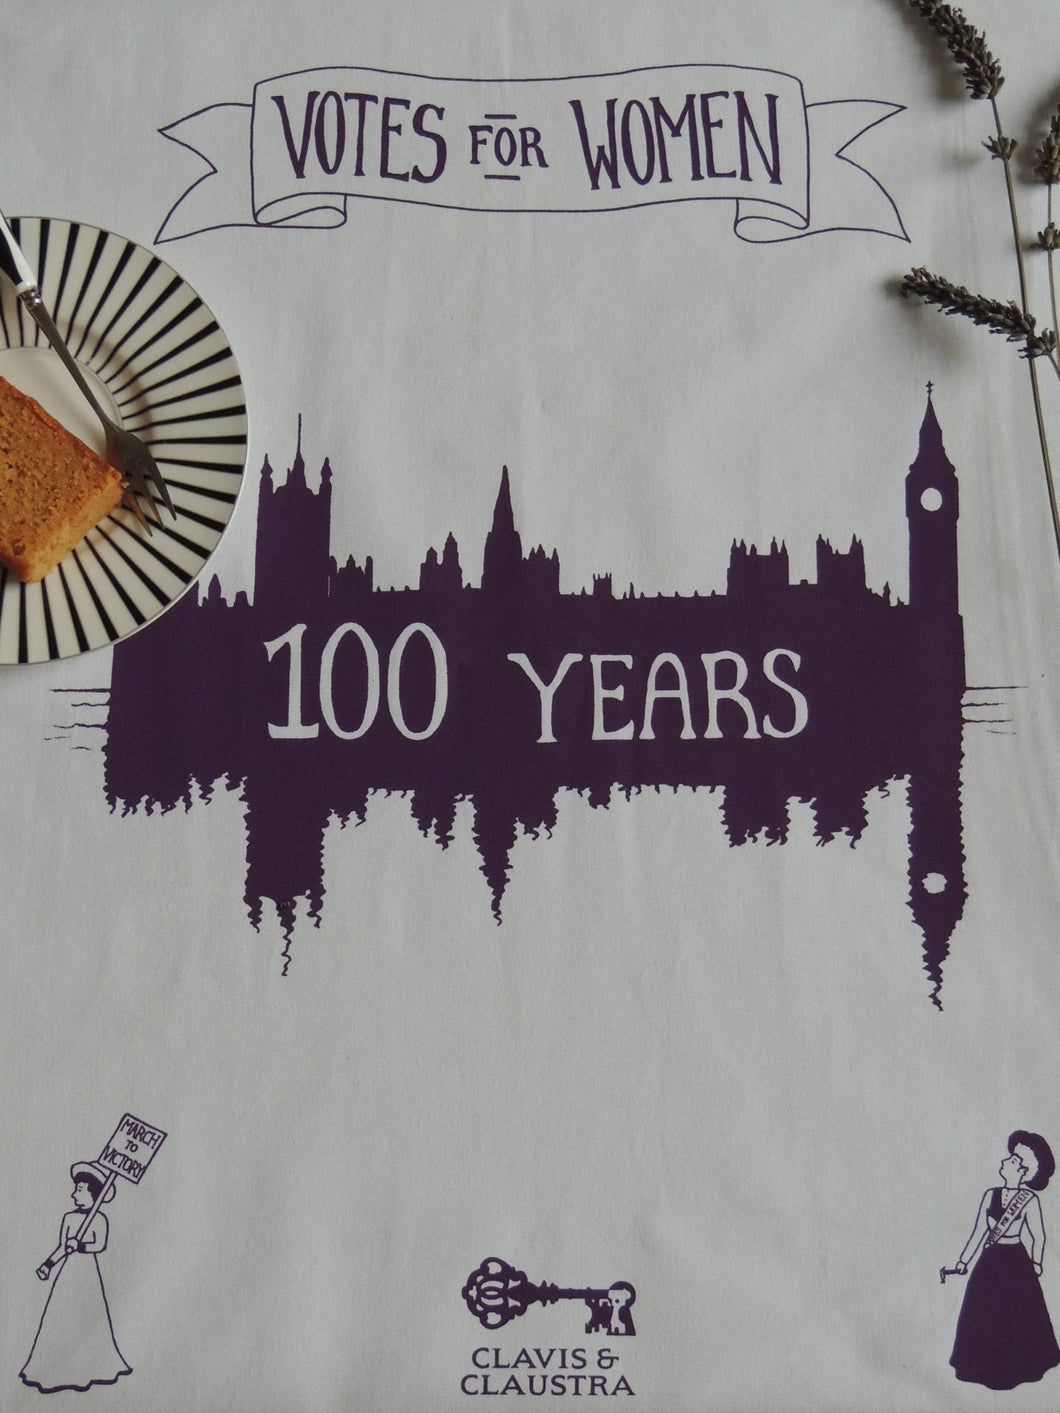 Suffragette Centenary tea towel